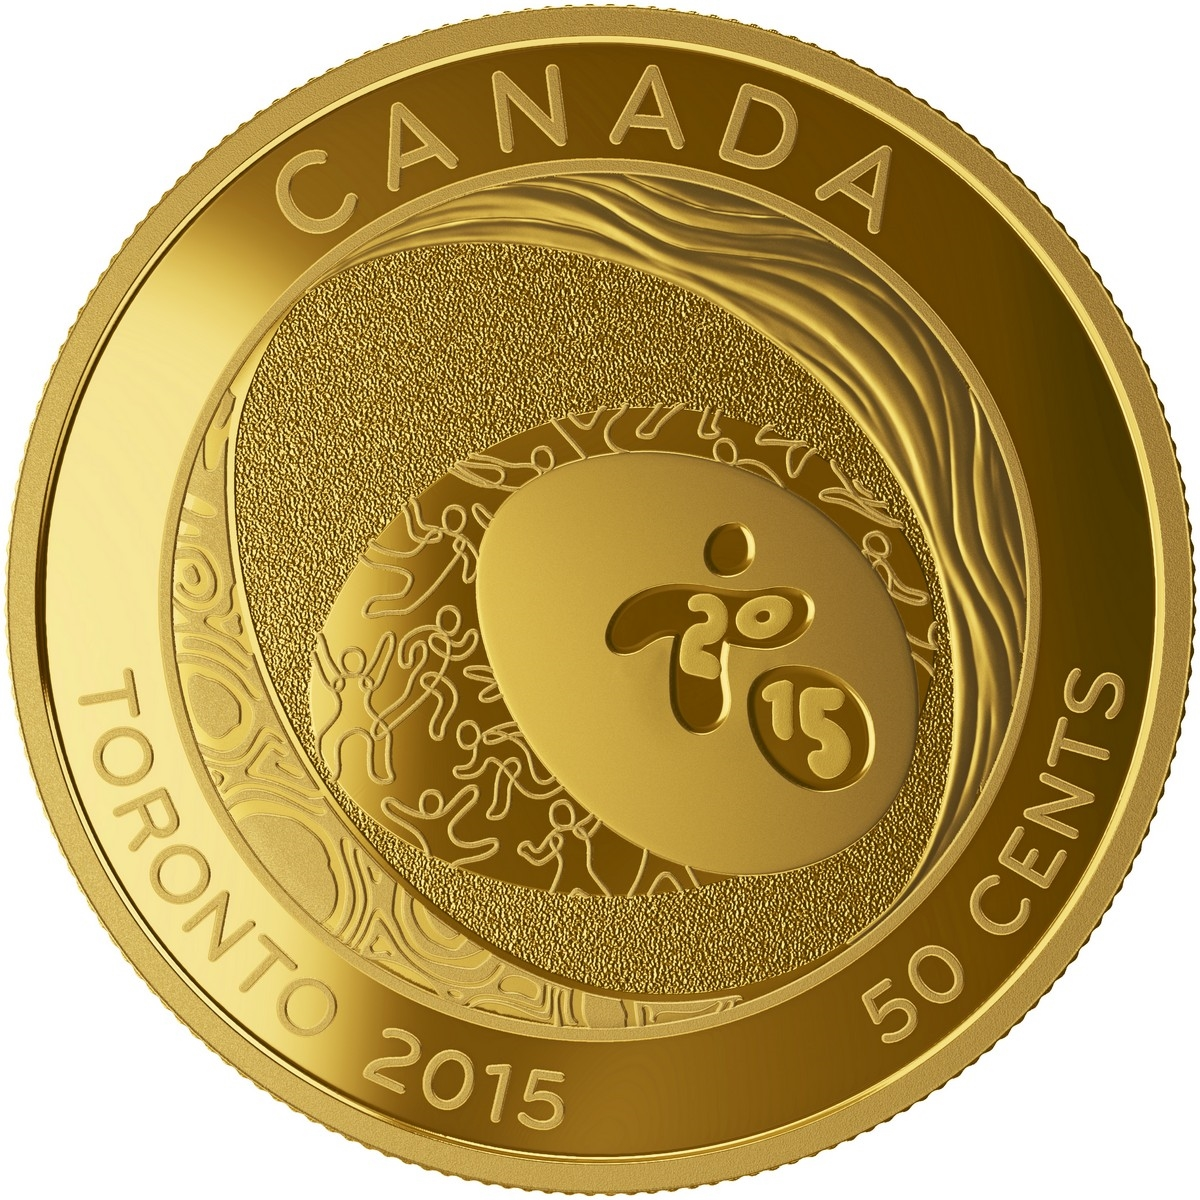 2015 50c gold plated coin toronto 2015 pan am parapan am games